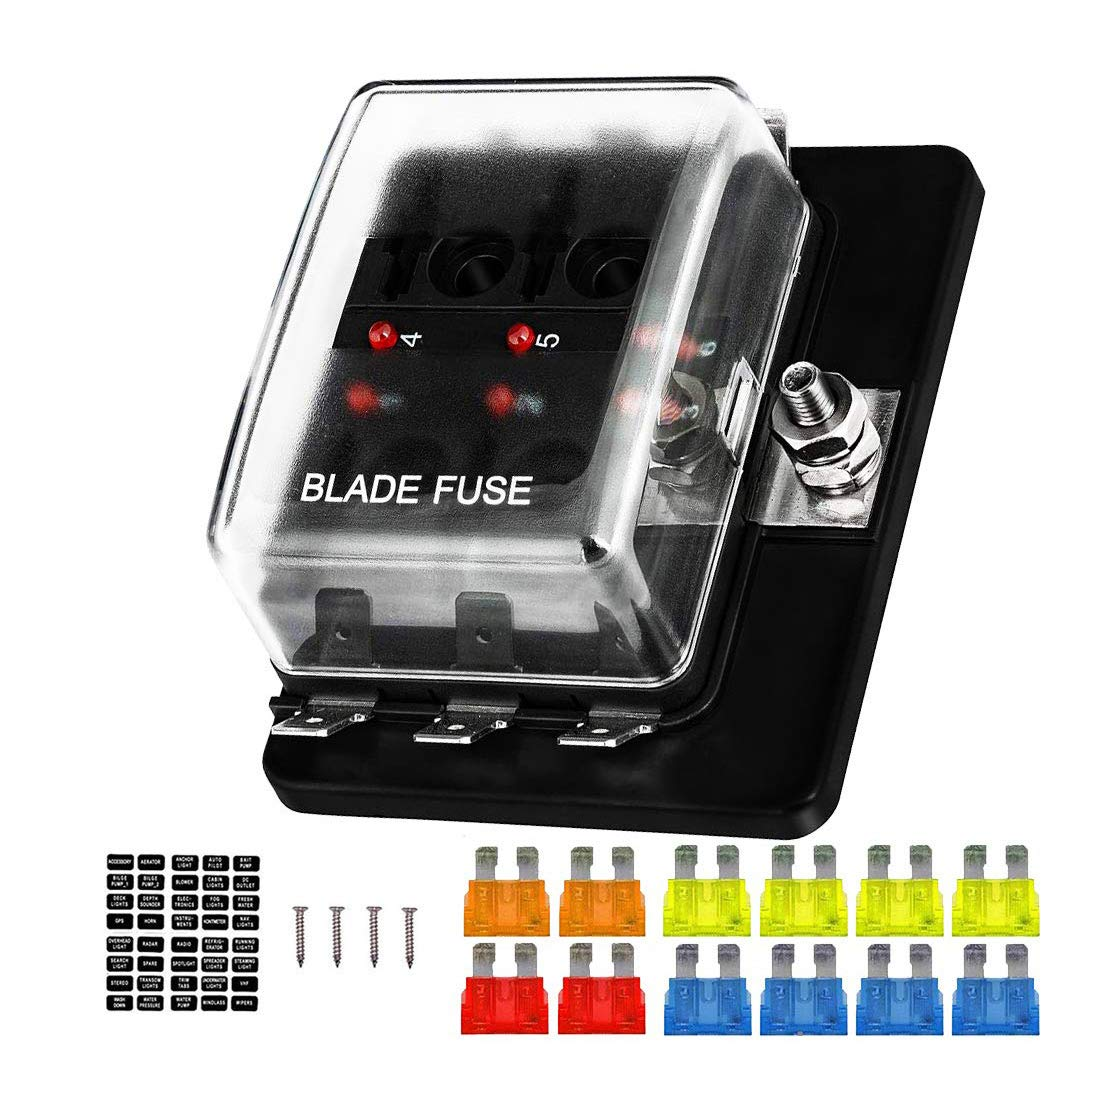 6-Way Blade Fuse Box with Waterproof Warning LED Max 40% OFF Cheap Sale 72% OFF Indicator Cover